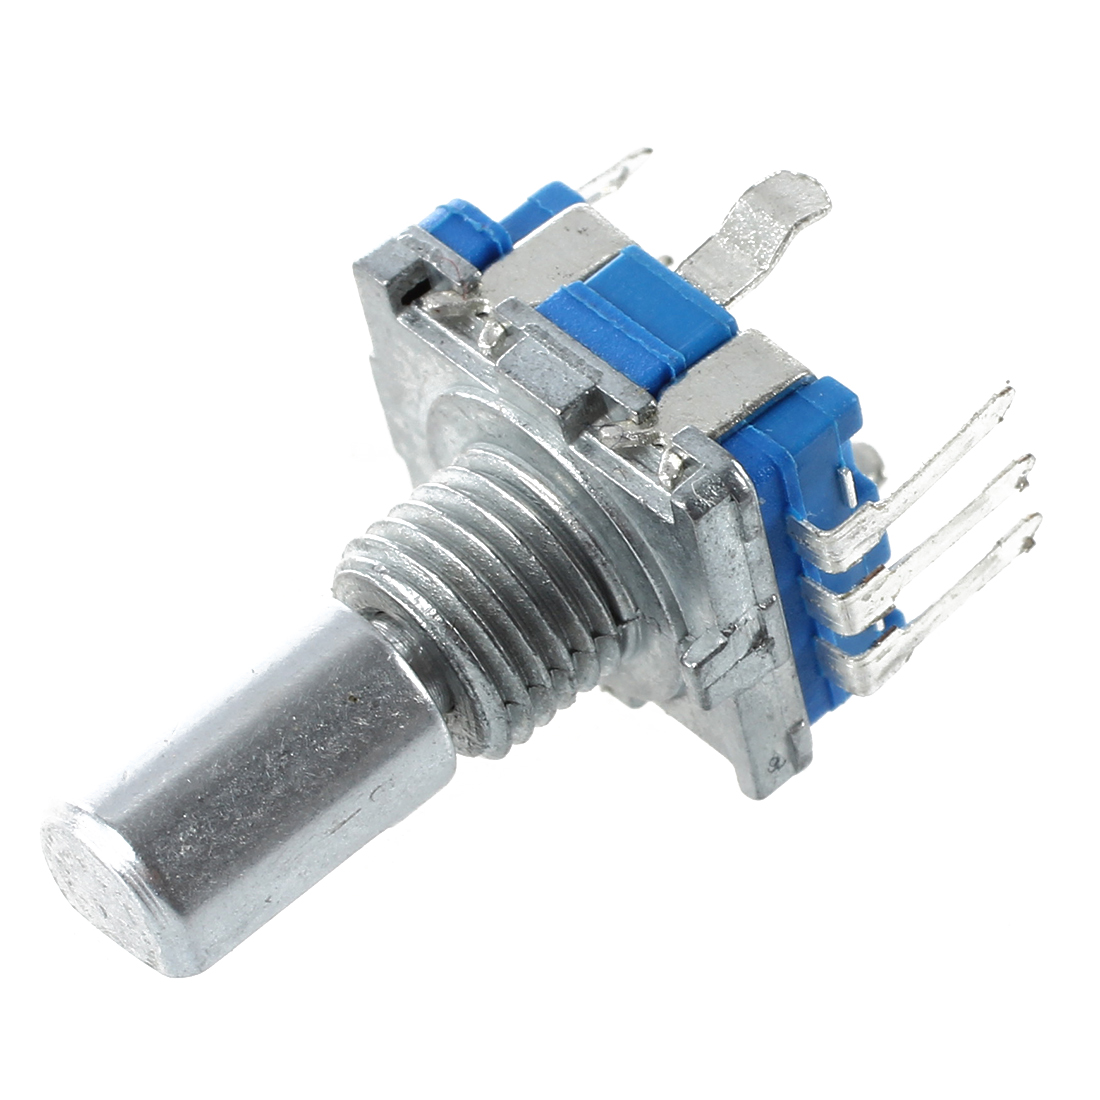 10 pieces 12 mm key switch rotary encoder switch10 pieces 12 mm key switch rotary encoder switch